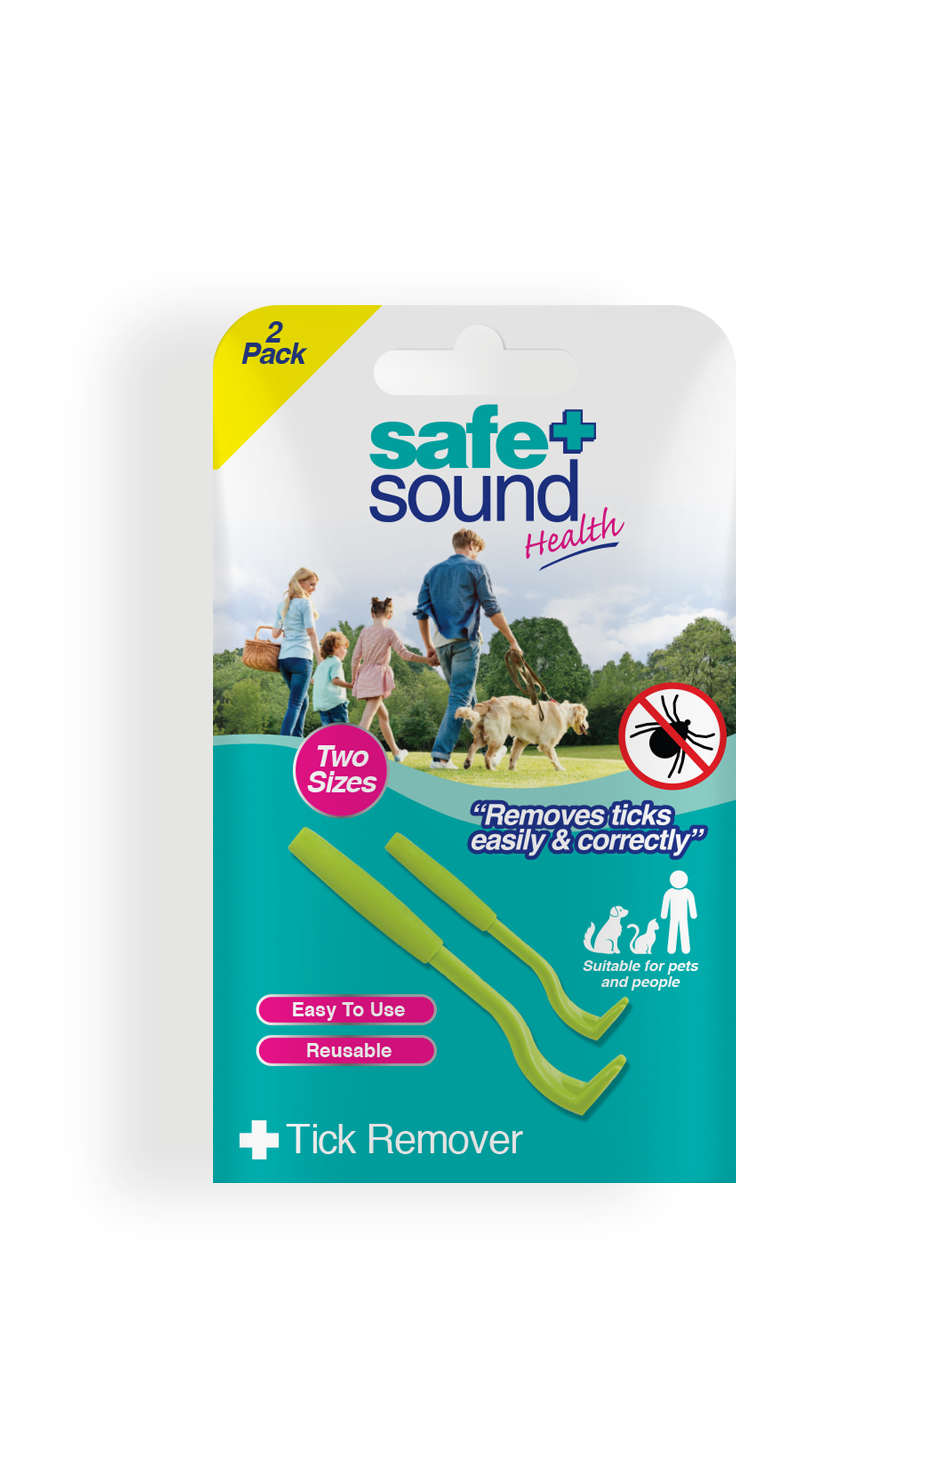 Safe and Sound Health Tick Removal Tool